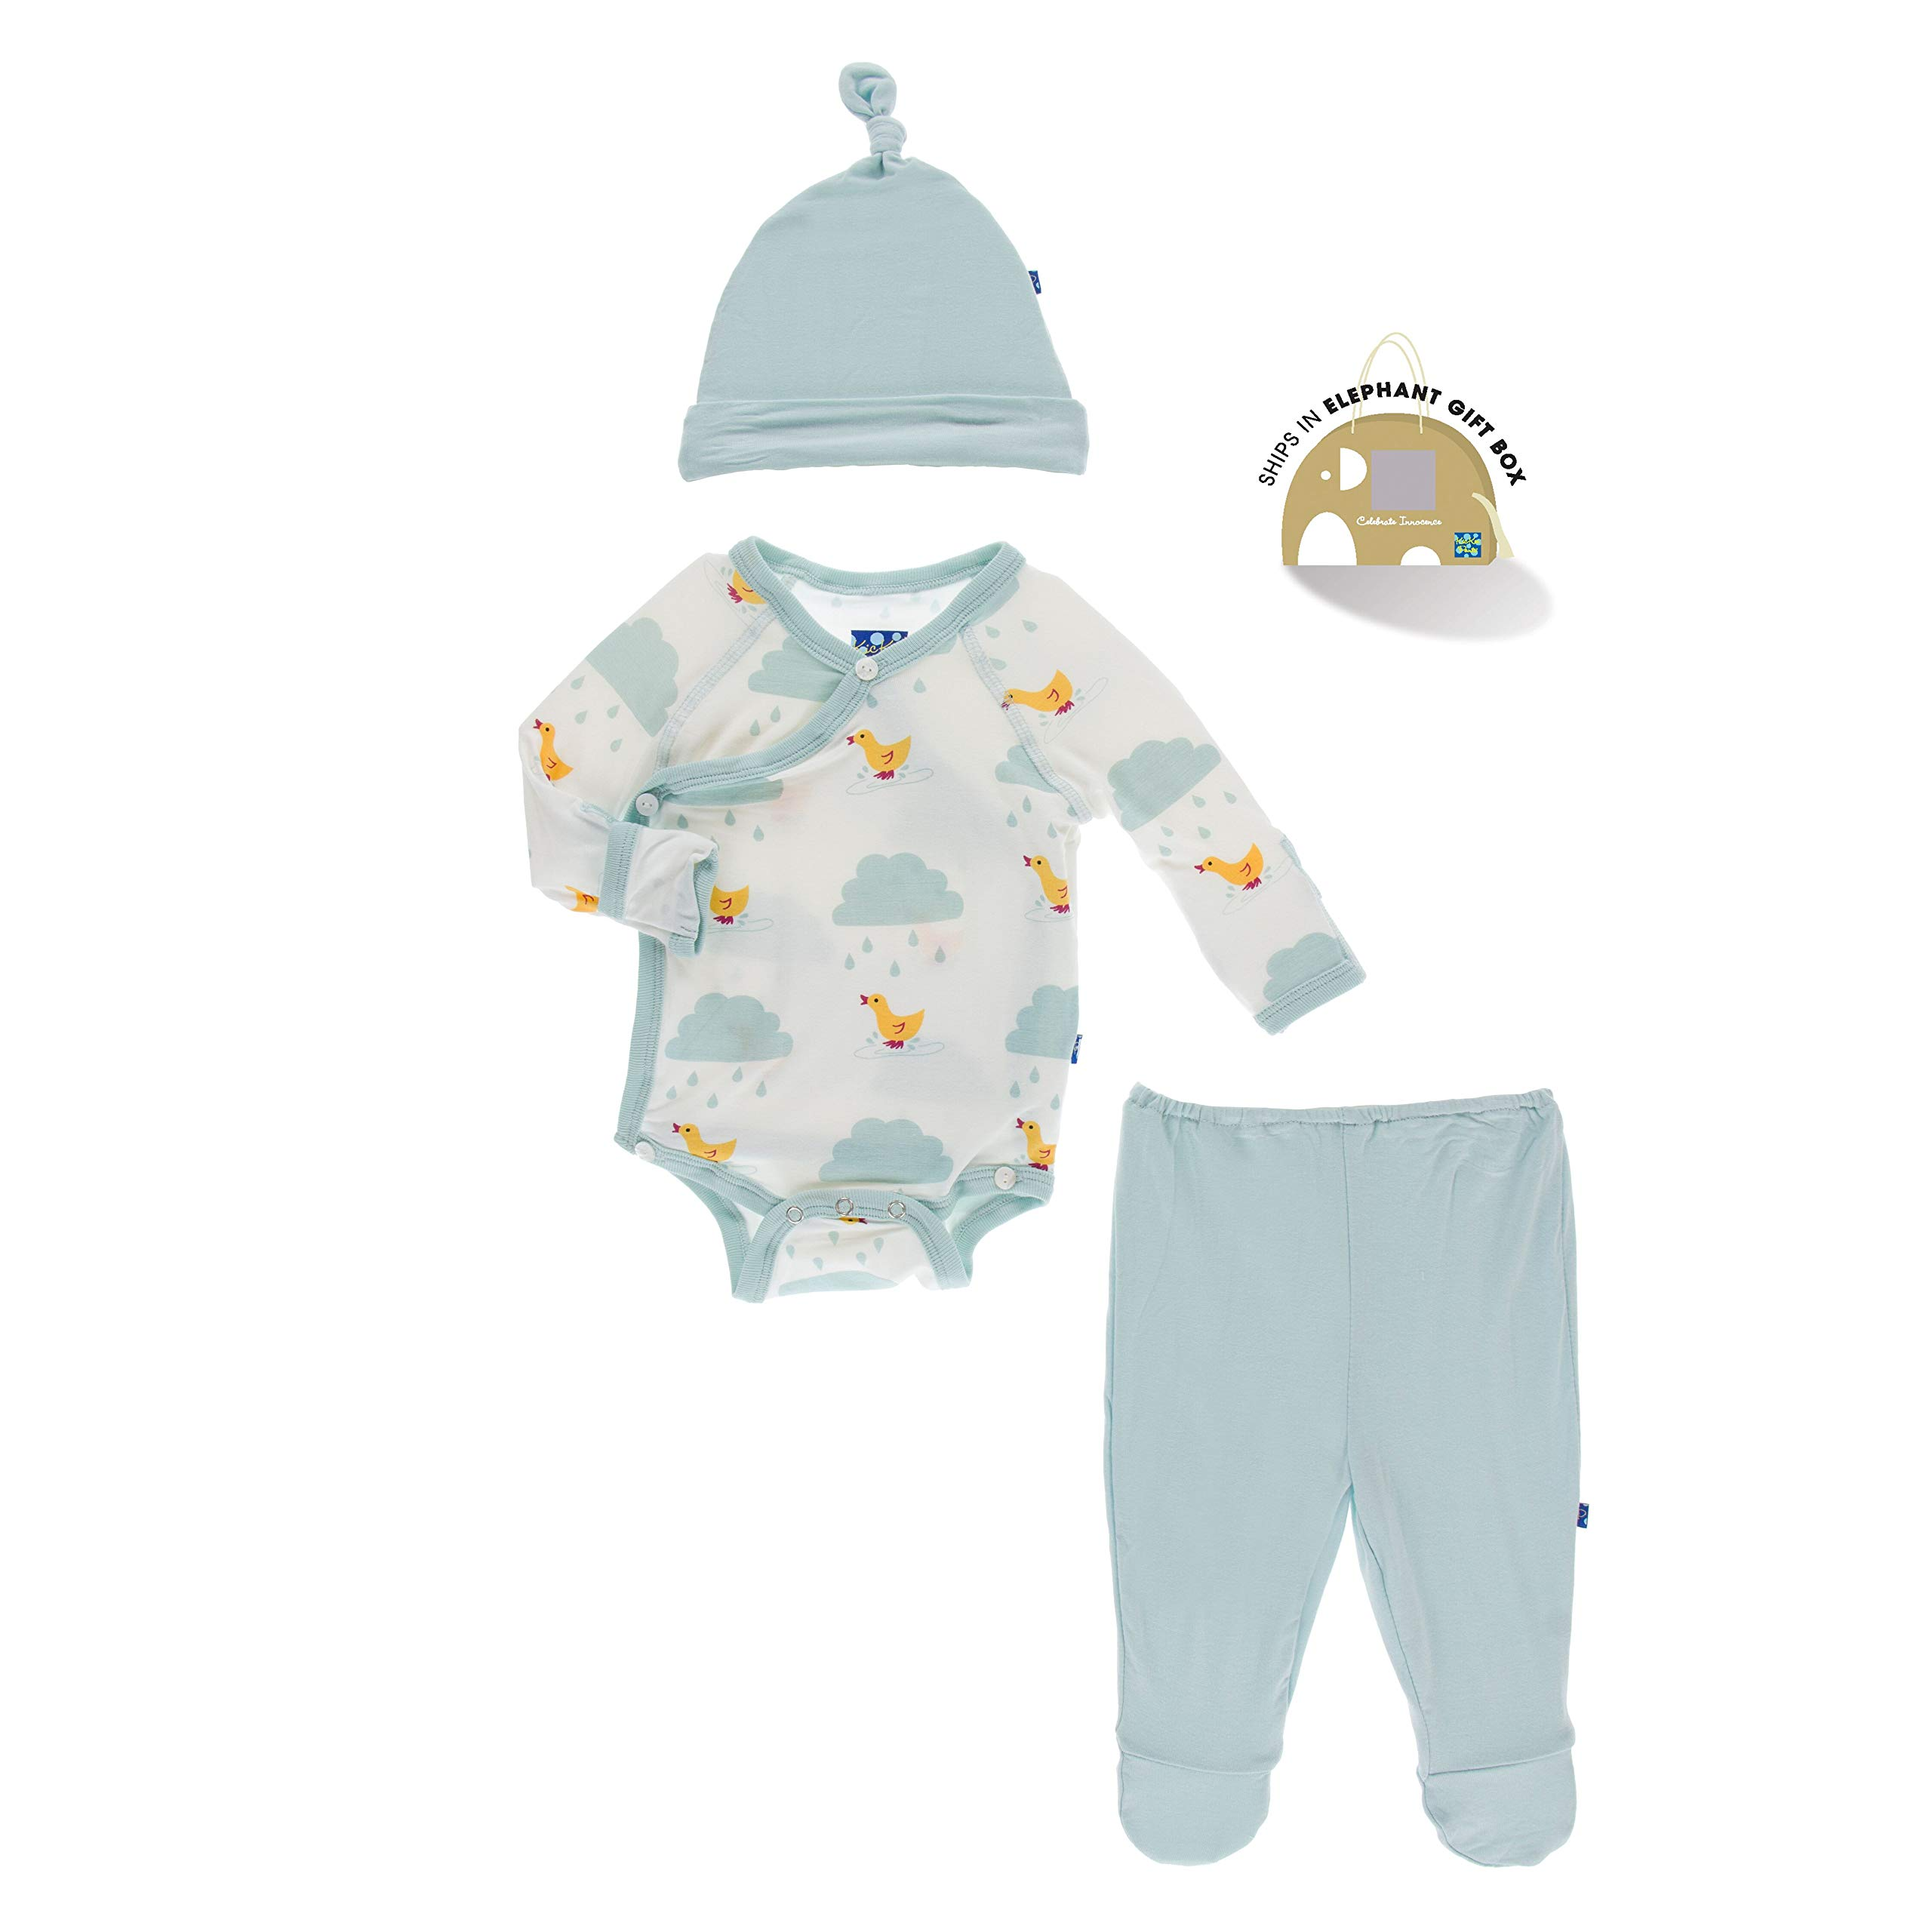 KicKee Pants Kimono Newborn Gift Set with Elephant Box | Geology and Meteorology Collection | (Newborn, Natural Puddle Duck) by Kic Kee Pants